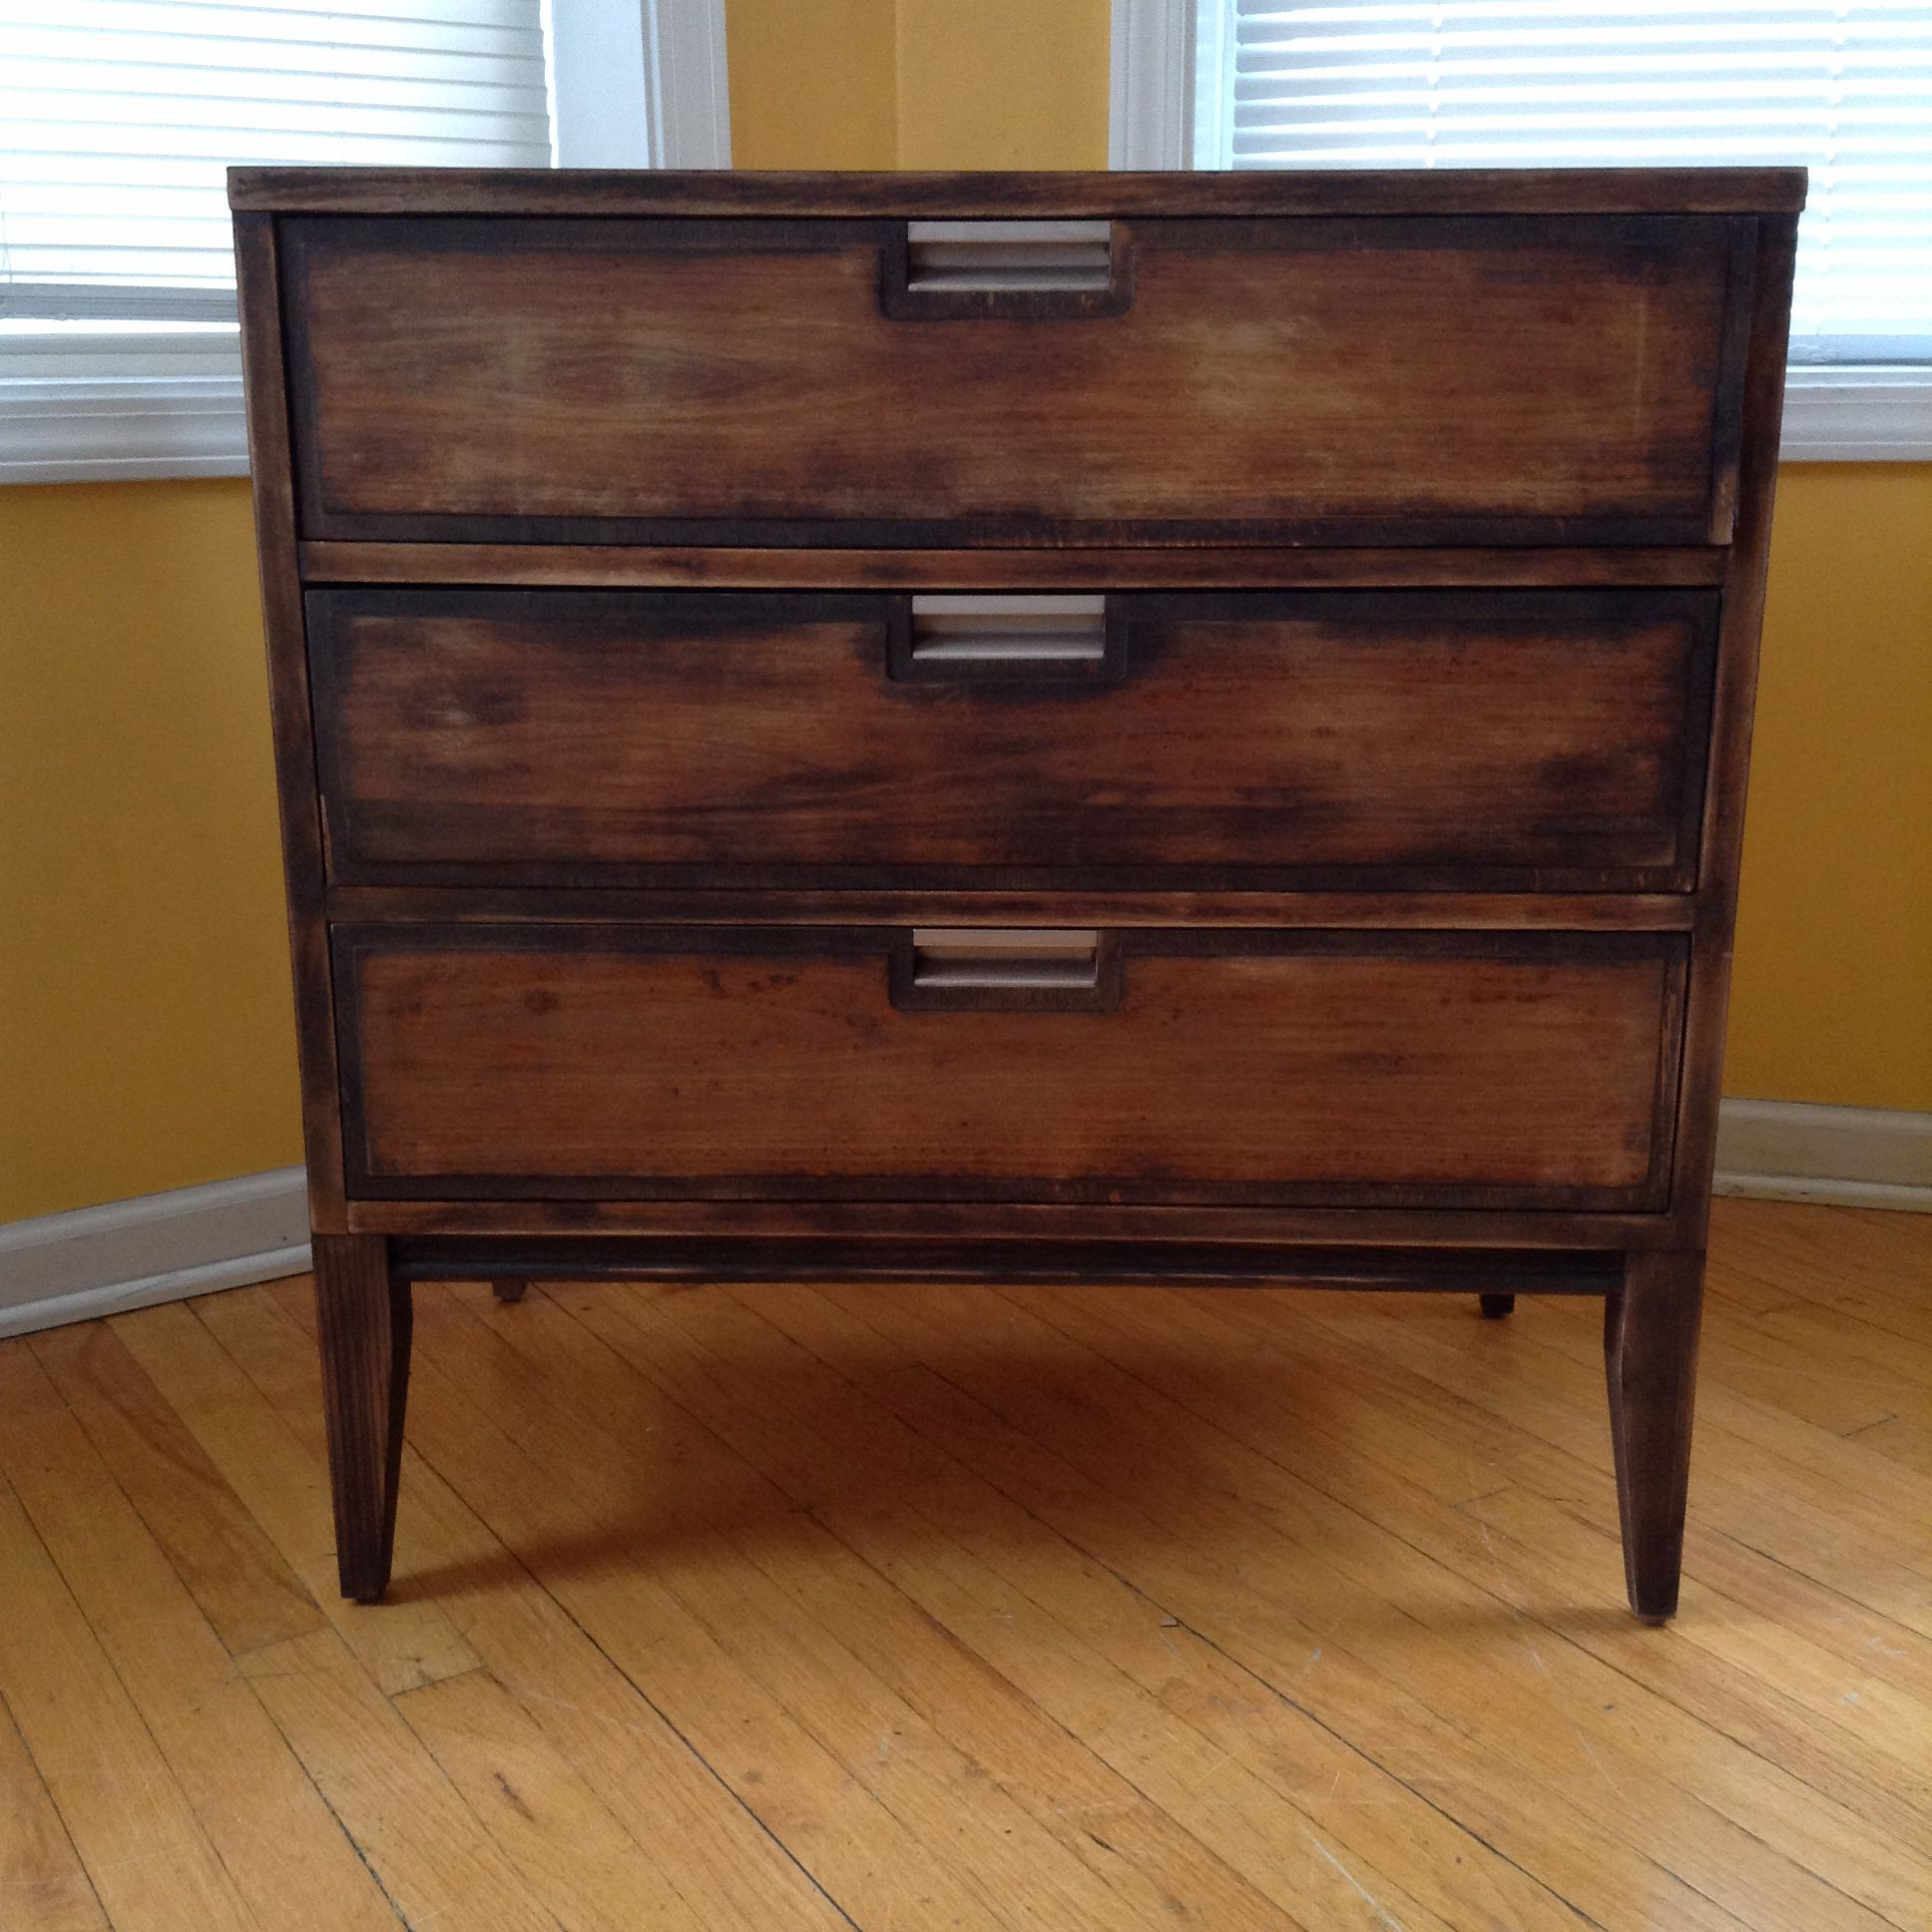 Attirant Torched And Distressed Petite MCM Dresser   Dark Edges Fading Into A Golden  Brown Center. # Rustic , Mid Century , Torched , Chicago Fire Furniture